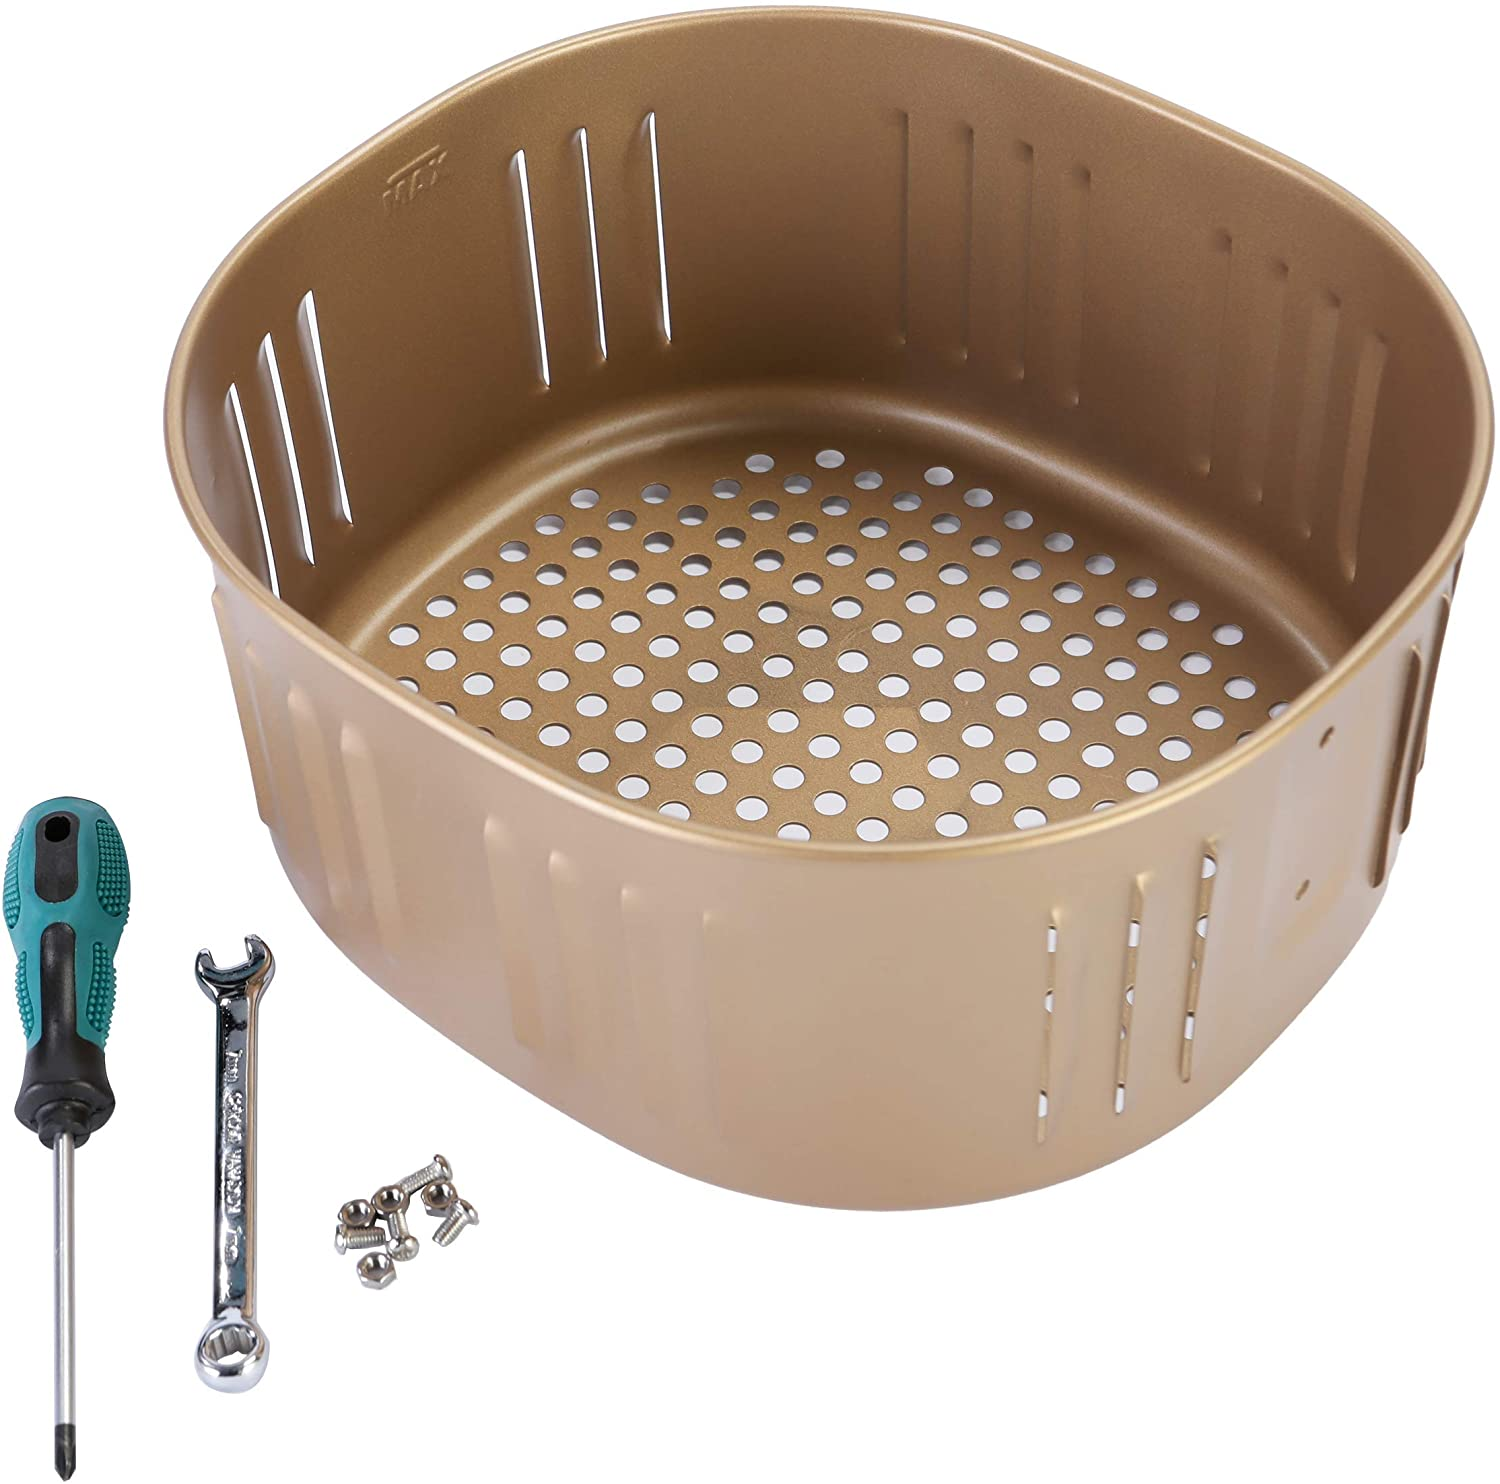 Air Fryer Replacement Basket For Power XL DASH Gowise USA Cozyna 5.5Qt Air Fryer,Air fryer Accessories, Non-Stick Fry Basket, Dishwasher Safe